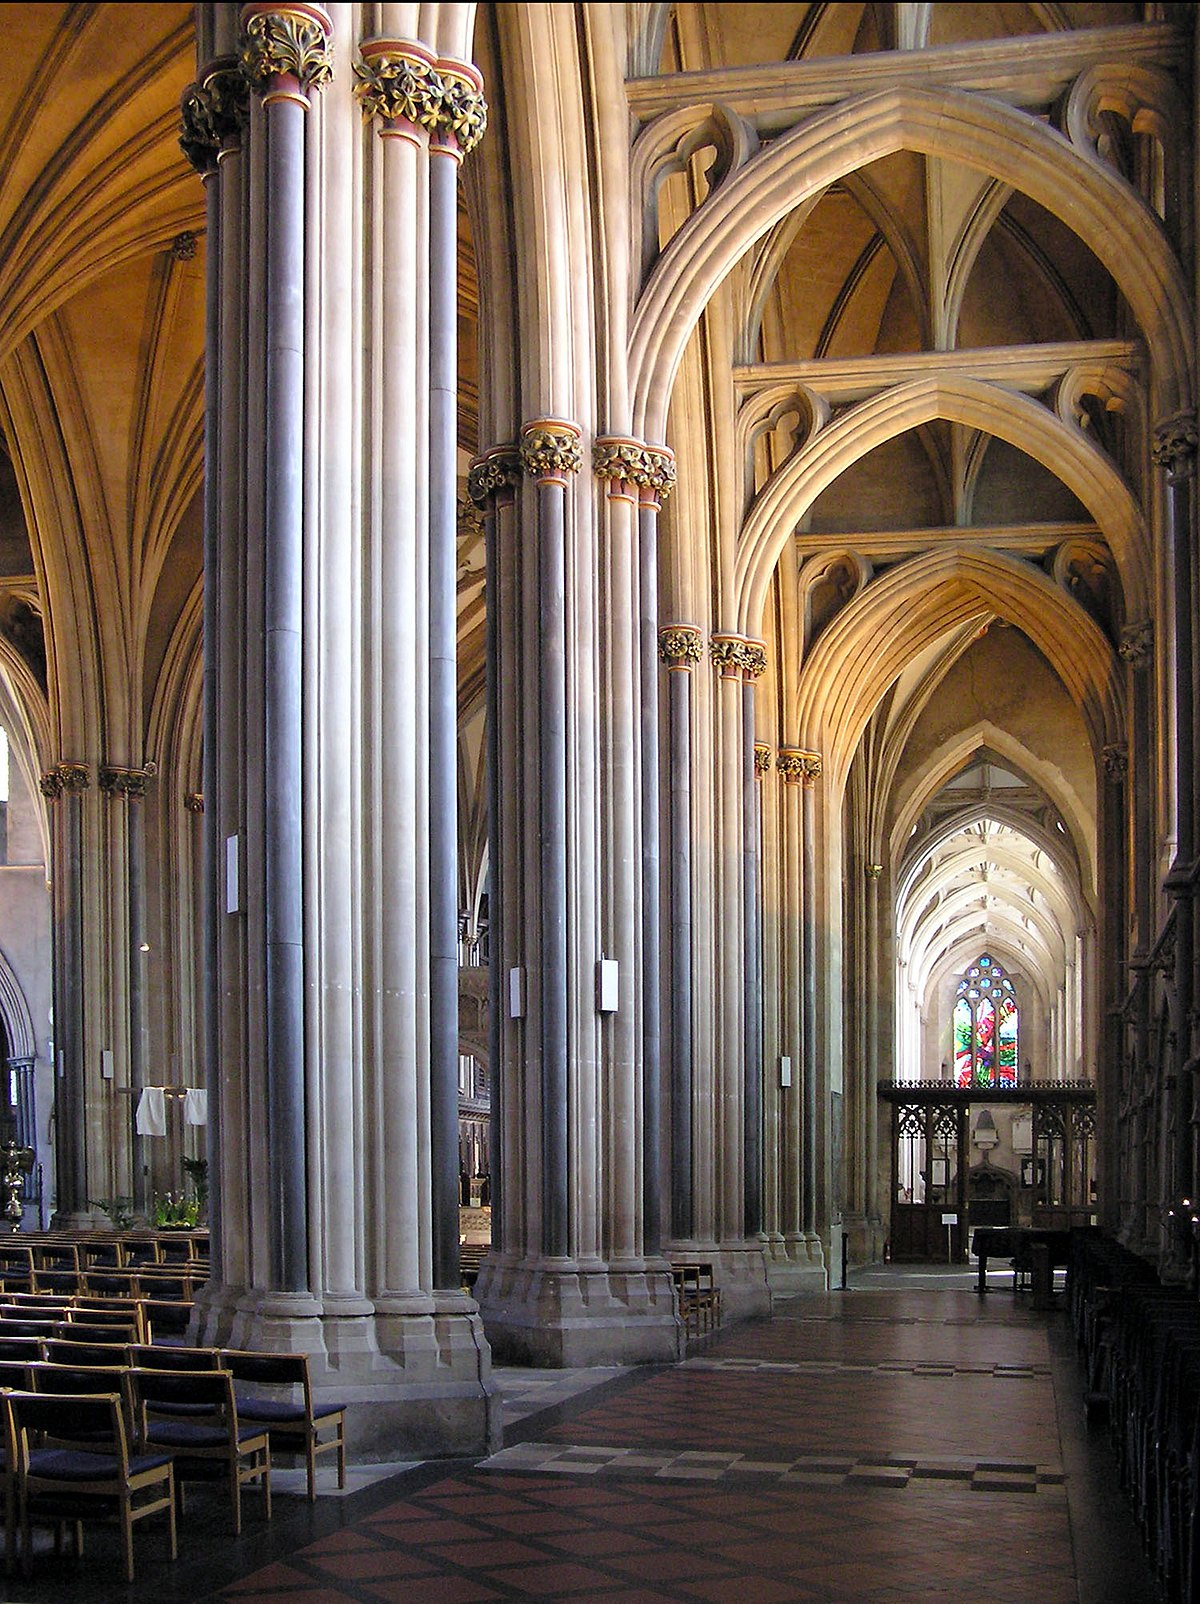 aisle cathedral bristol side gothic isle wikipedia church england architecture arp nave interior etc medieval somerset vs aisles 様式 arquitectura